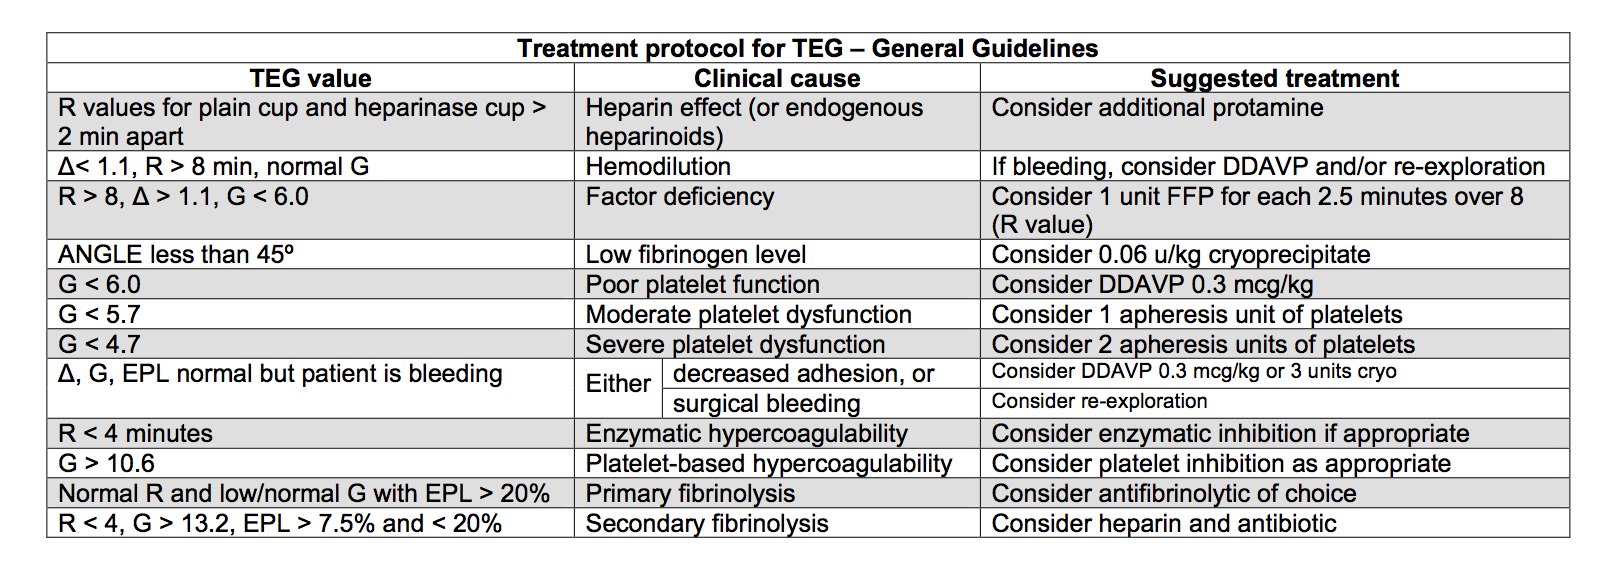 Table 1: Summary of abnormal values with interpretation and suggested therapeutic measures. NOTE: THese are general guidelines; ALWAYS consider the clinicalsituation and direct therapyaccordingly.